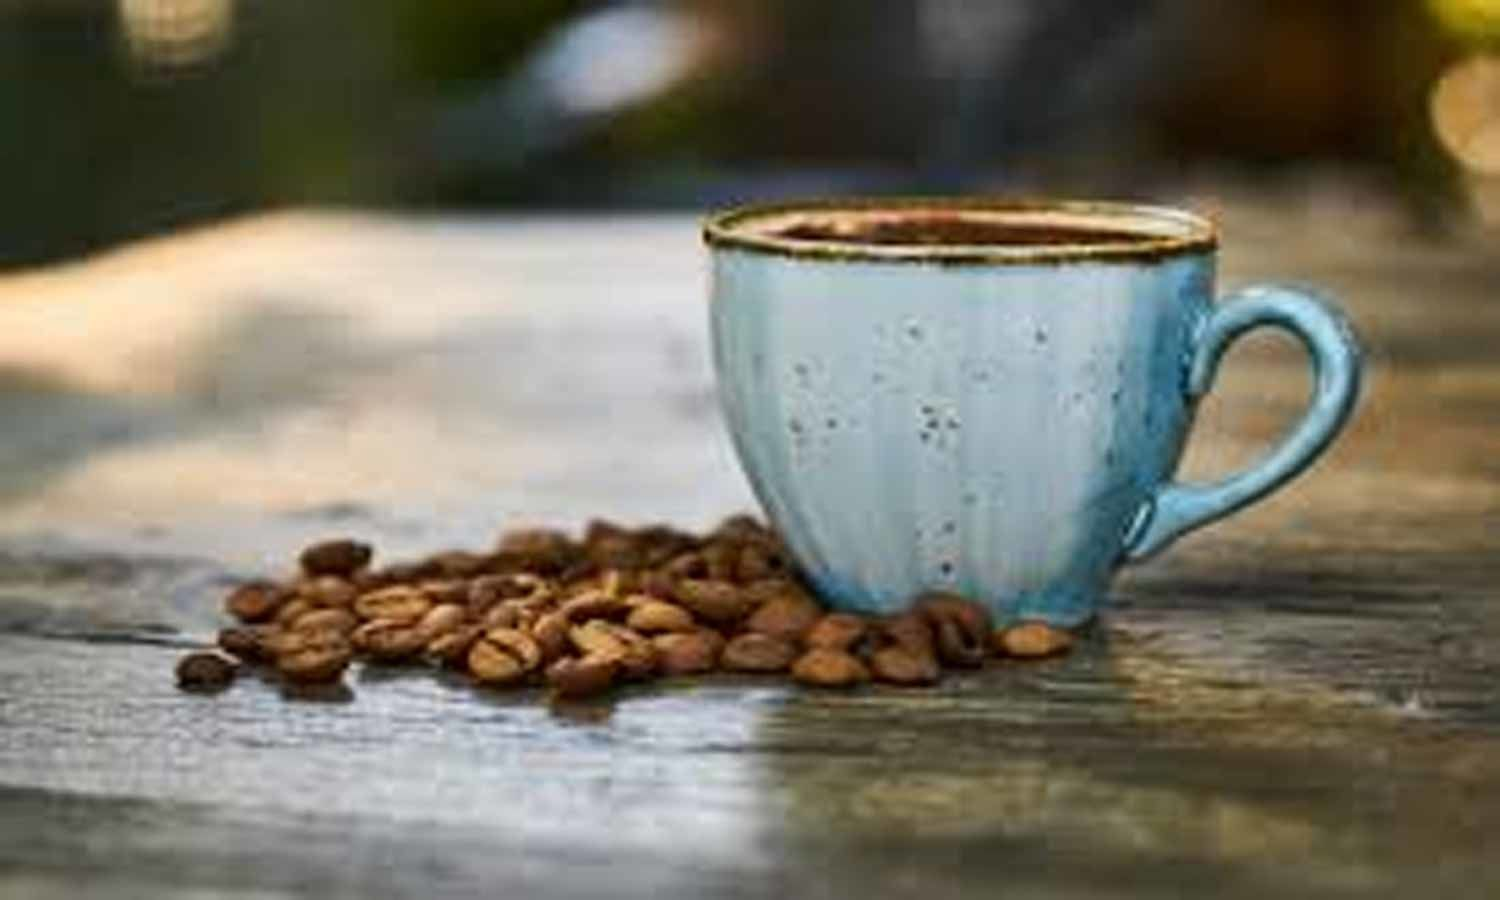 High consumption of coffee powder  turns lethal for woman: BMJ case report